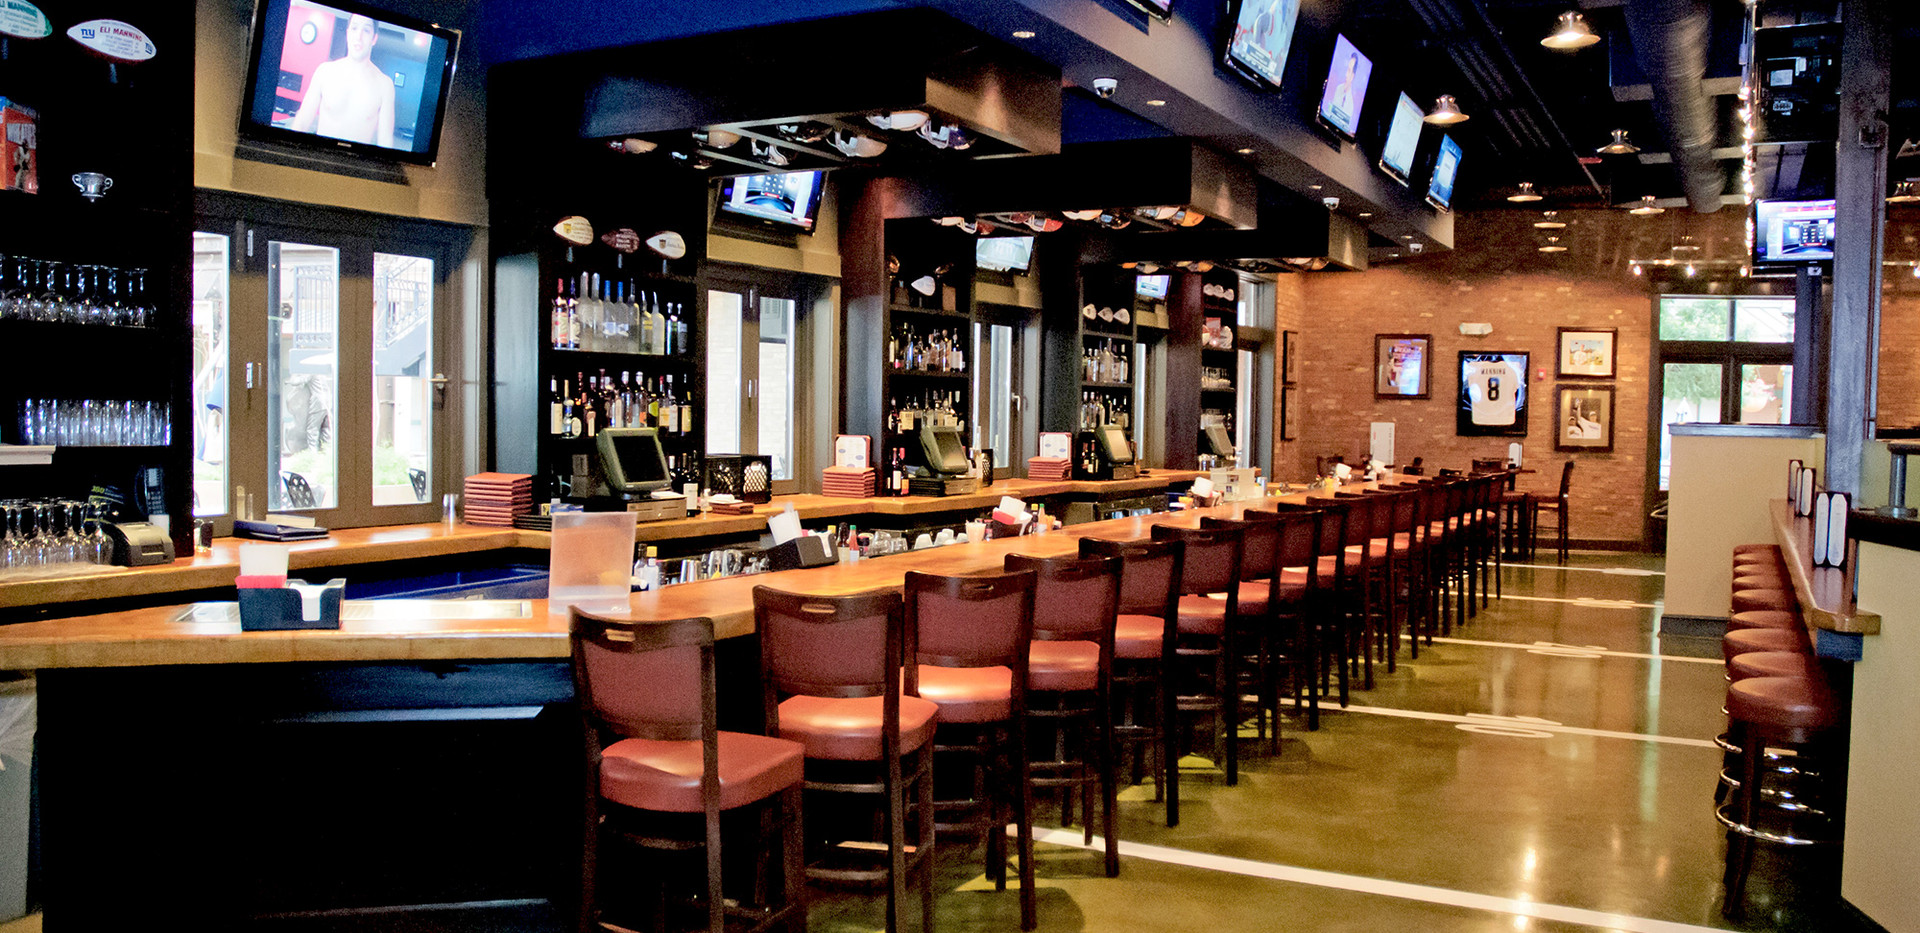 The Manning Sports Bar & Grill